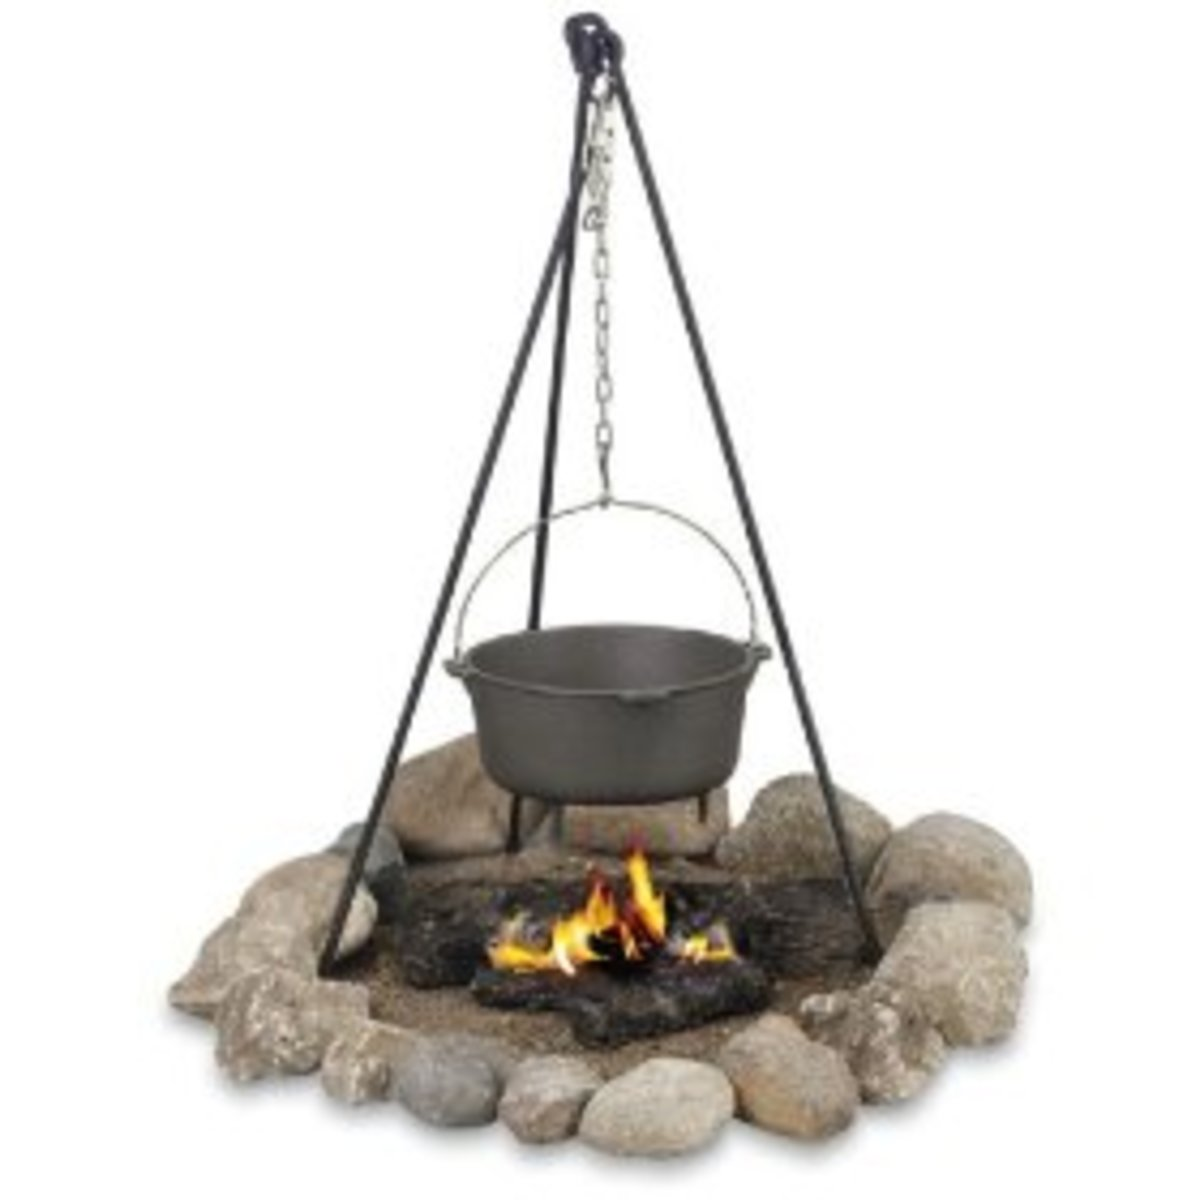 Dutch oven cooking with a tri-pod